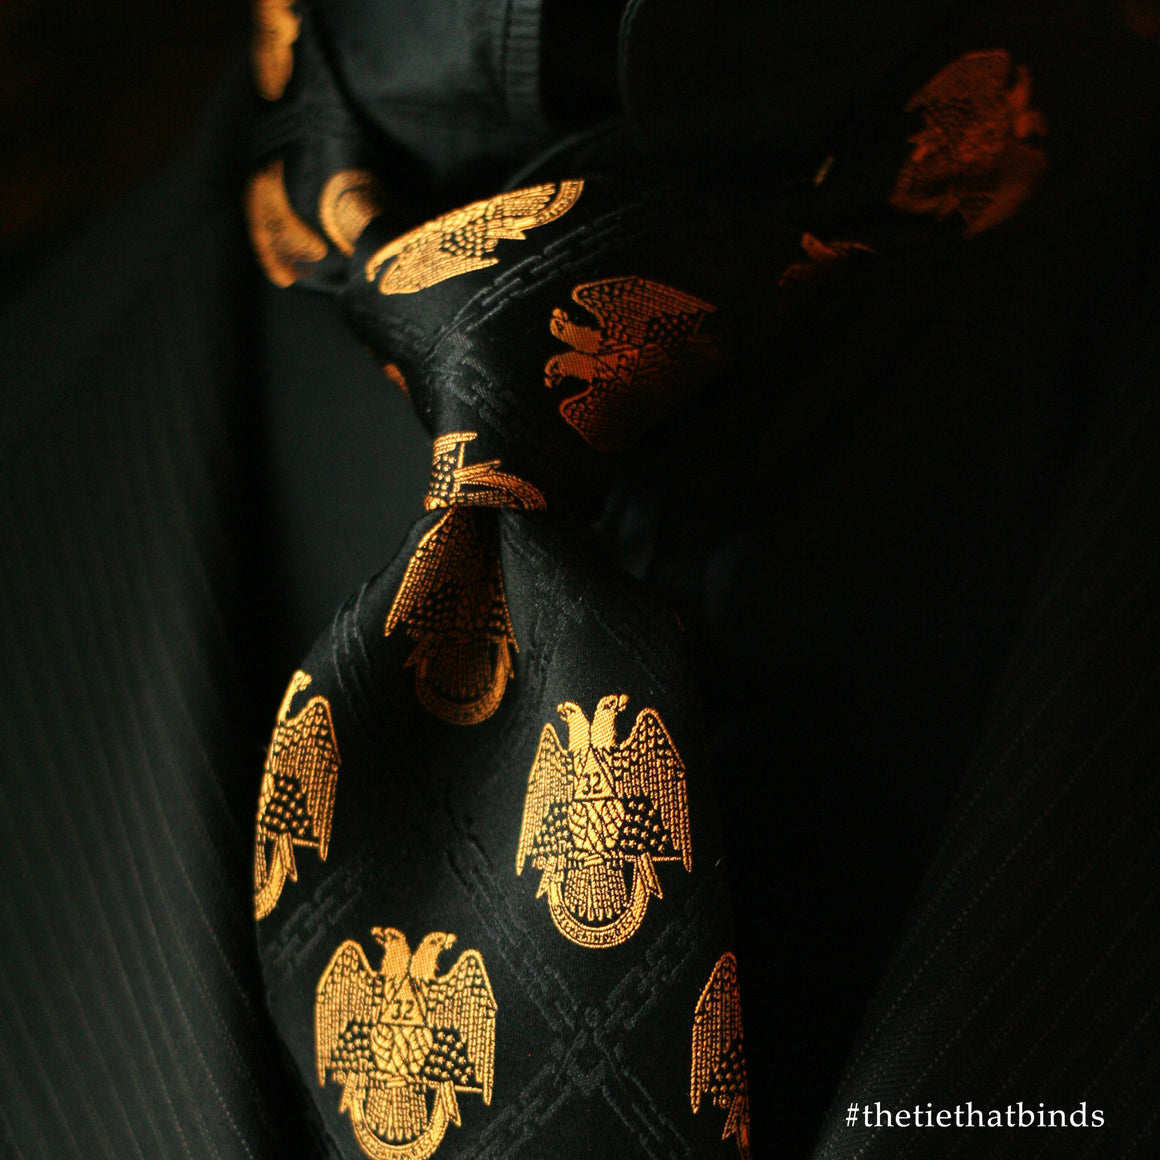 32nd Degree Scottish Rite necktie No. 1 (from personal collection)